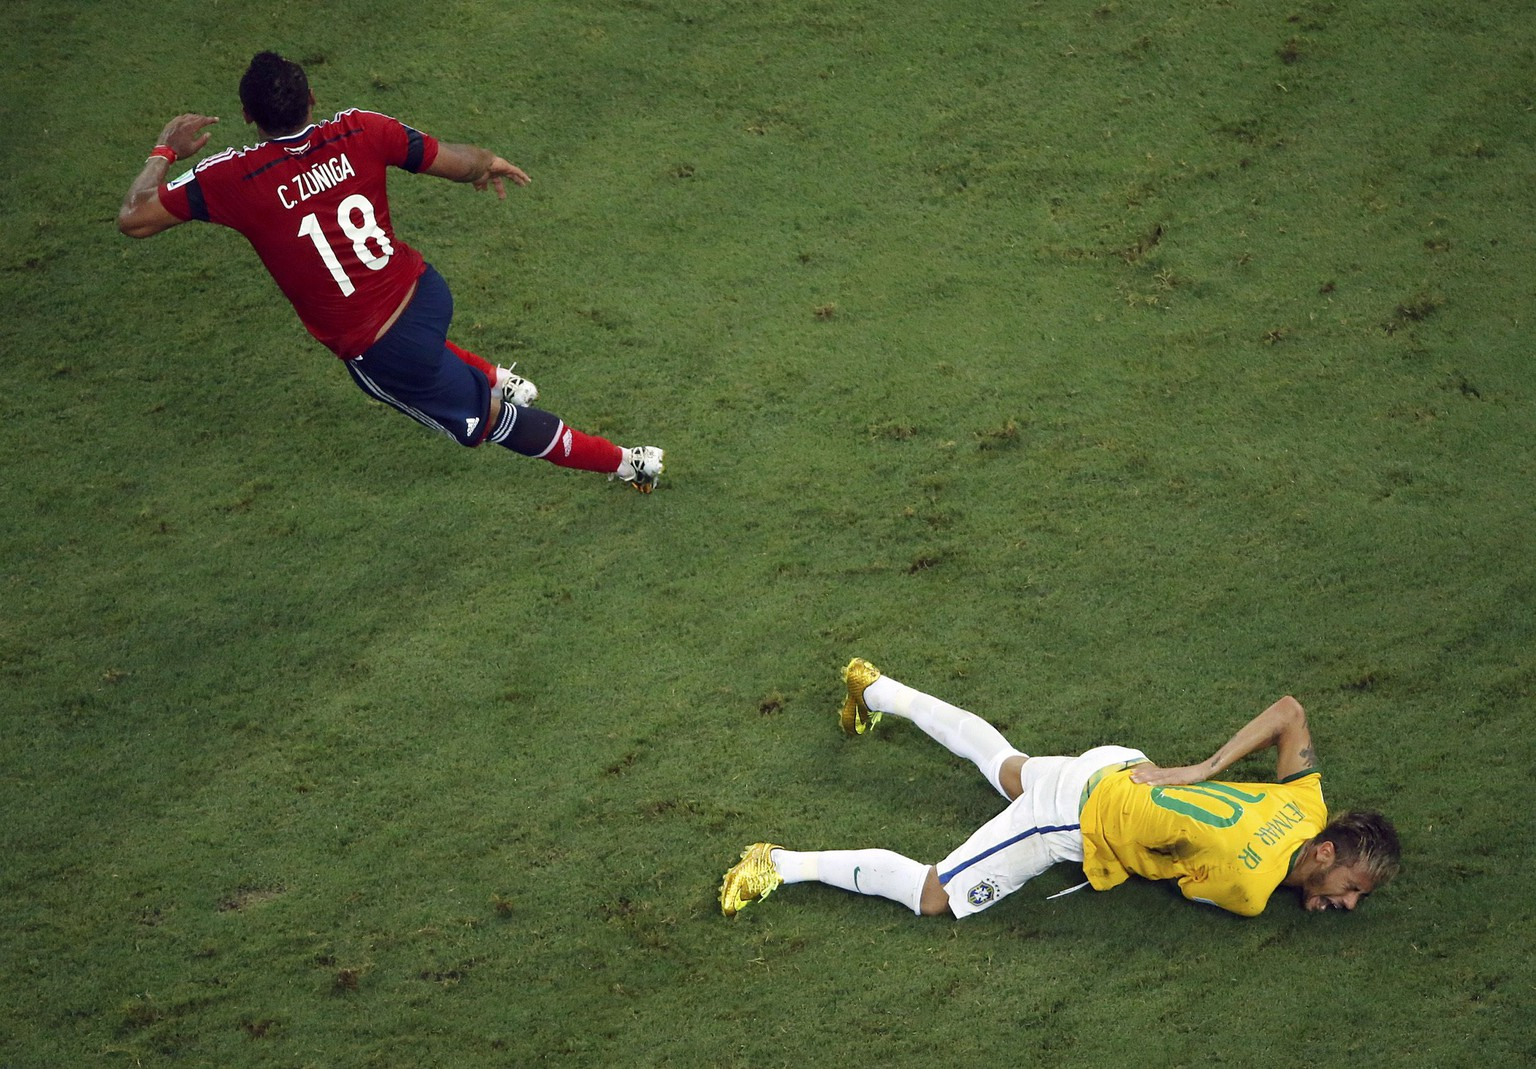 Brazil's Neymar grimaces as he lies on the ground injured after a challenge by Colombia's Camilo Zuniga during their 2014 World Cup quarter-finals at the Castelao arena in Fortaleza July 4, 2014.     REUTERS/Fabrizio Bensch (BRAZIL  - Tags: SOCCER SPORT WORLD CUP TPX IMAGES OF THE DAY)       TOPCUP